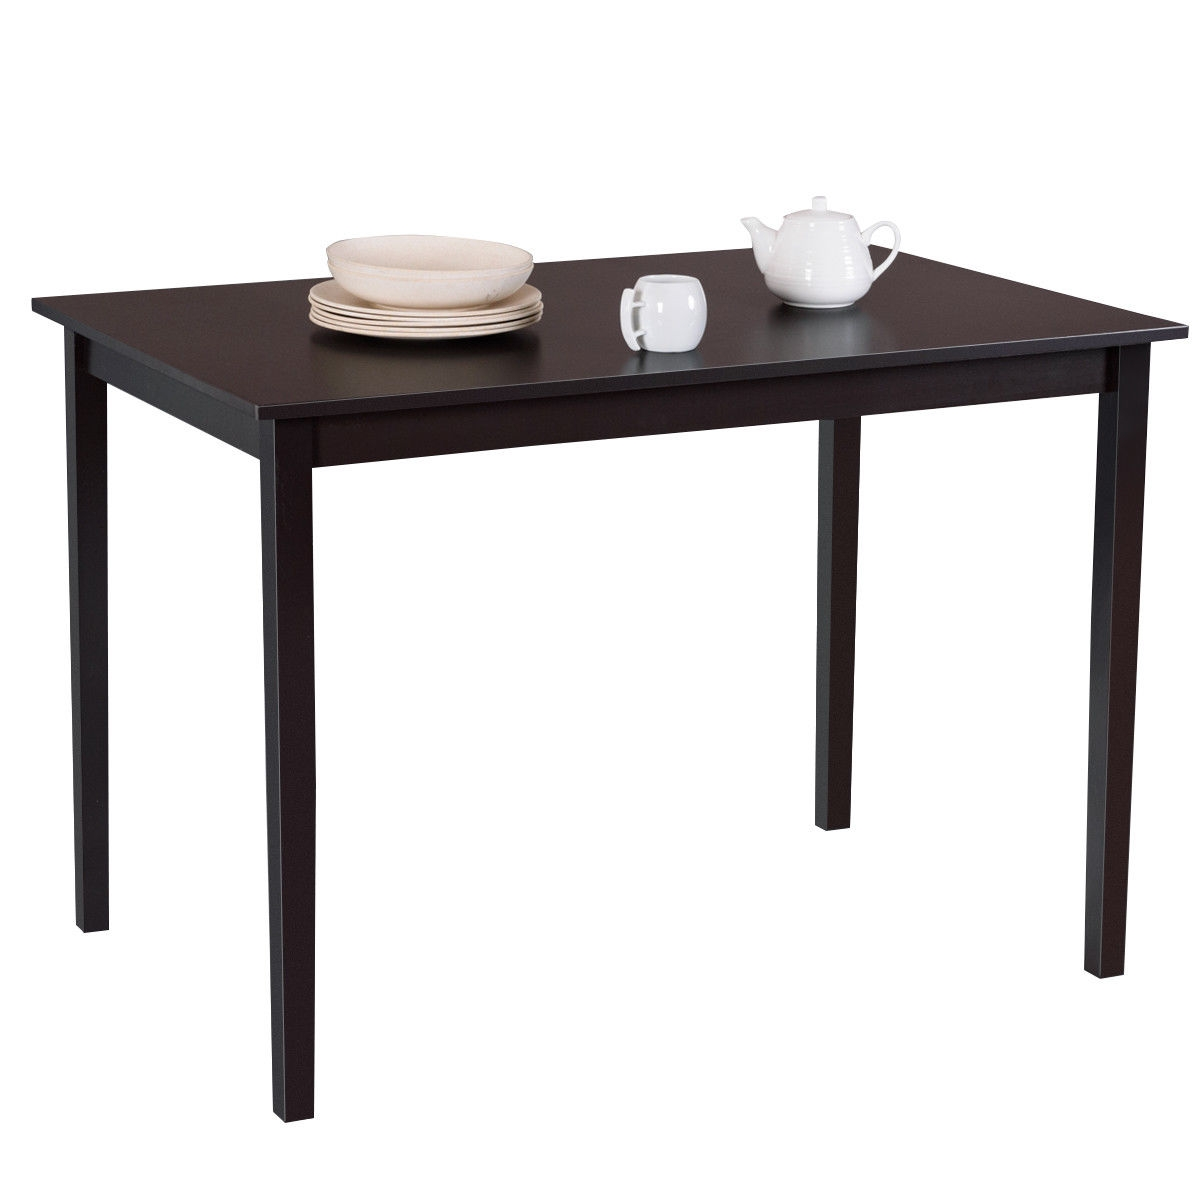 Modern Rectangle Dining Table with Wooden Legs